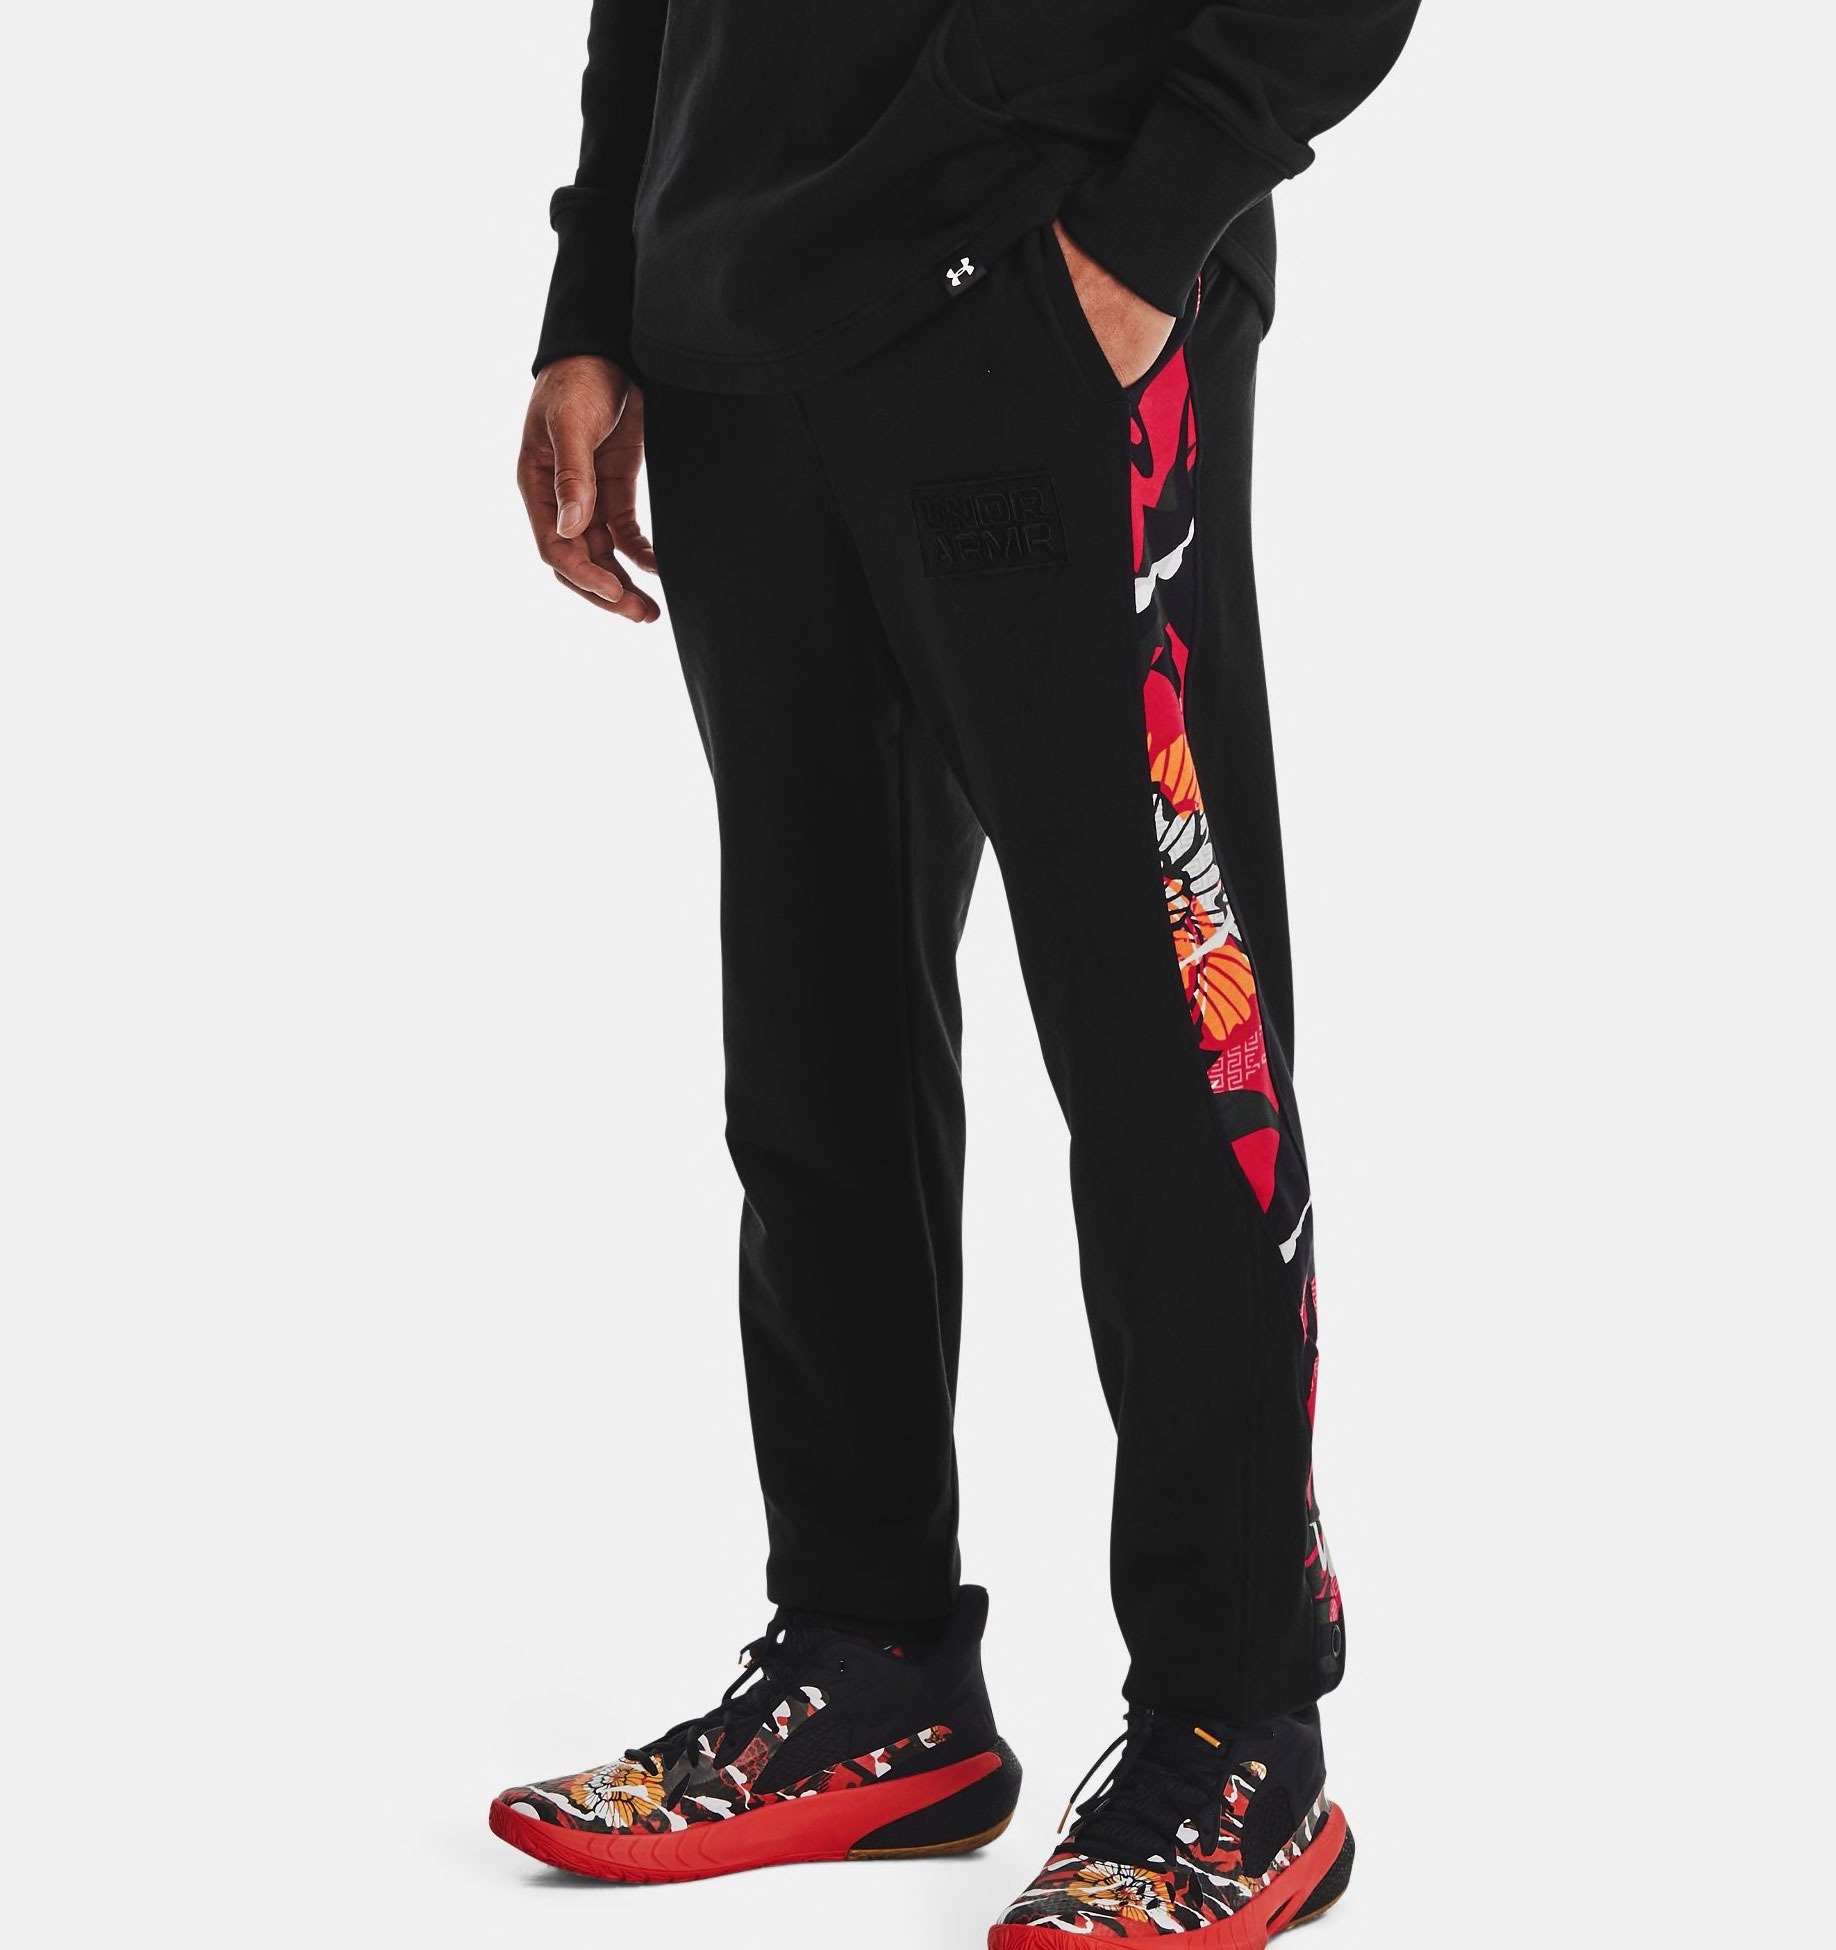 under-armour-chinese-new-year-curry-8-cny-pants